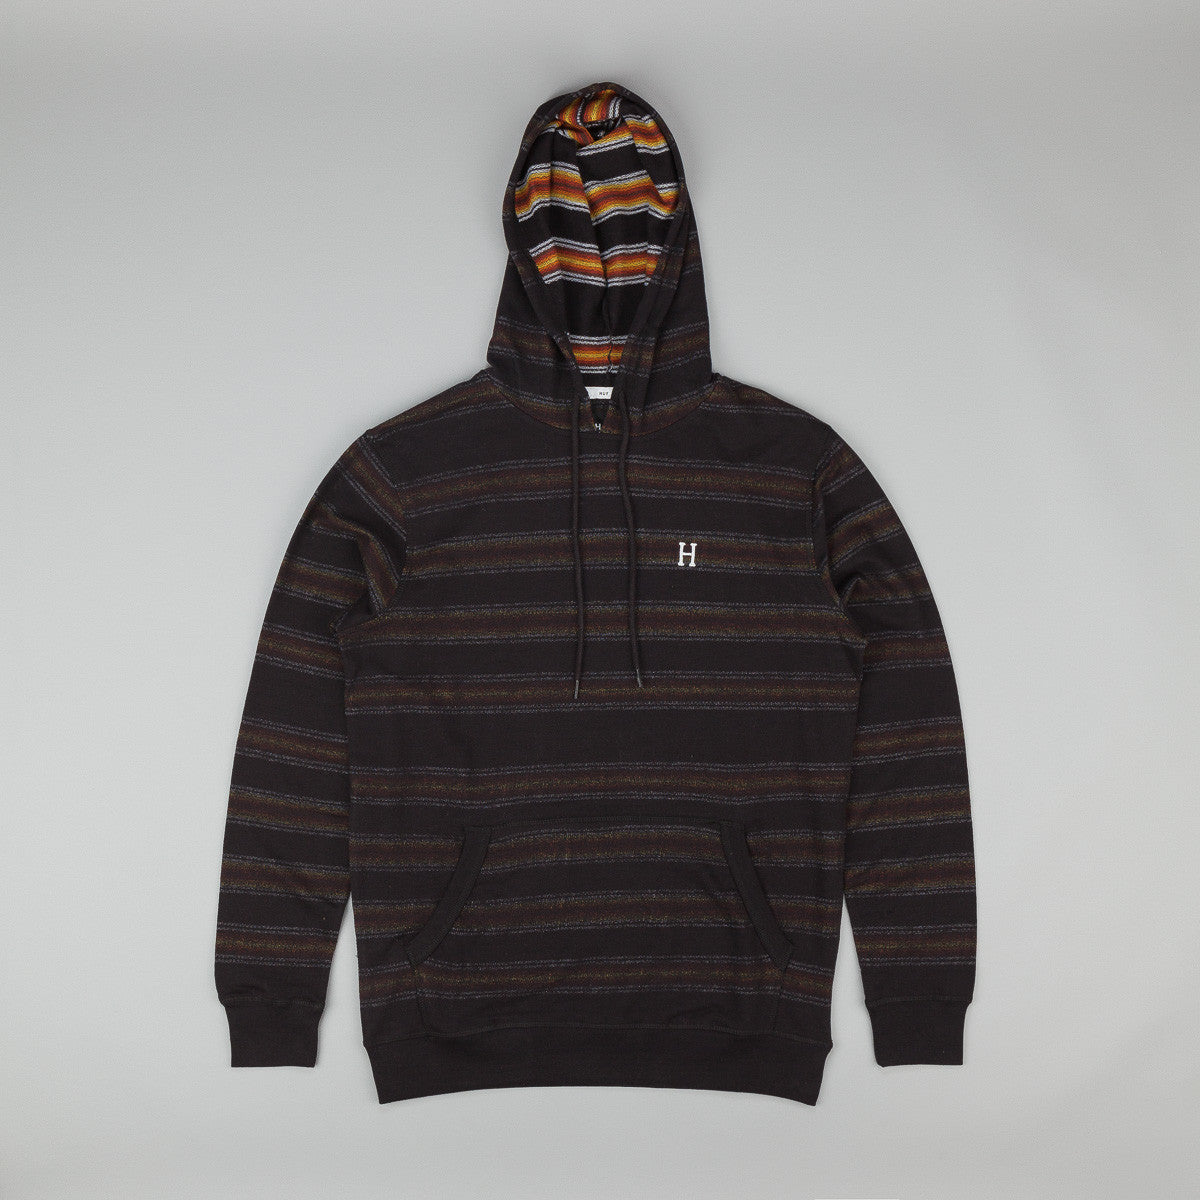 HUF Serape Hooded Pullover Sweatshirt - Black